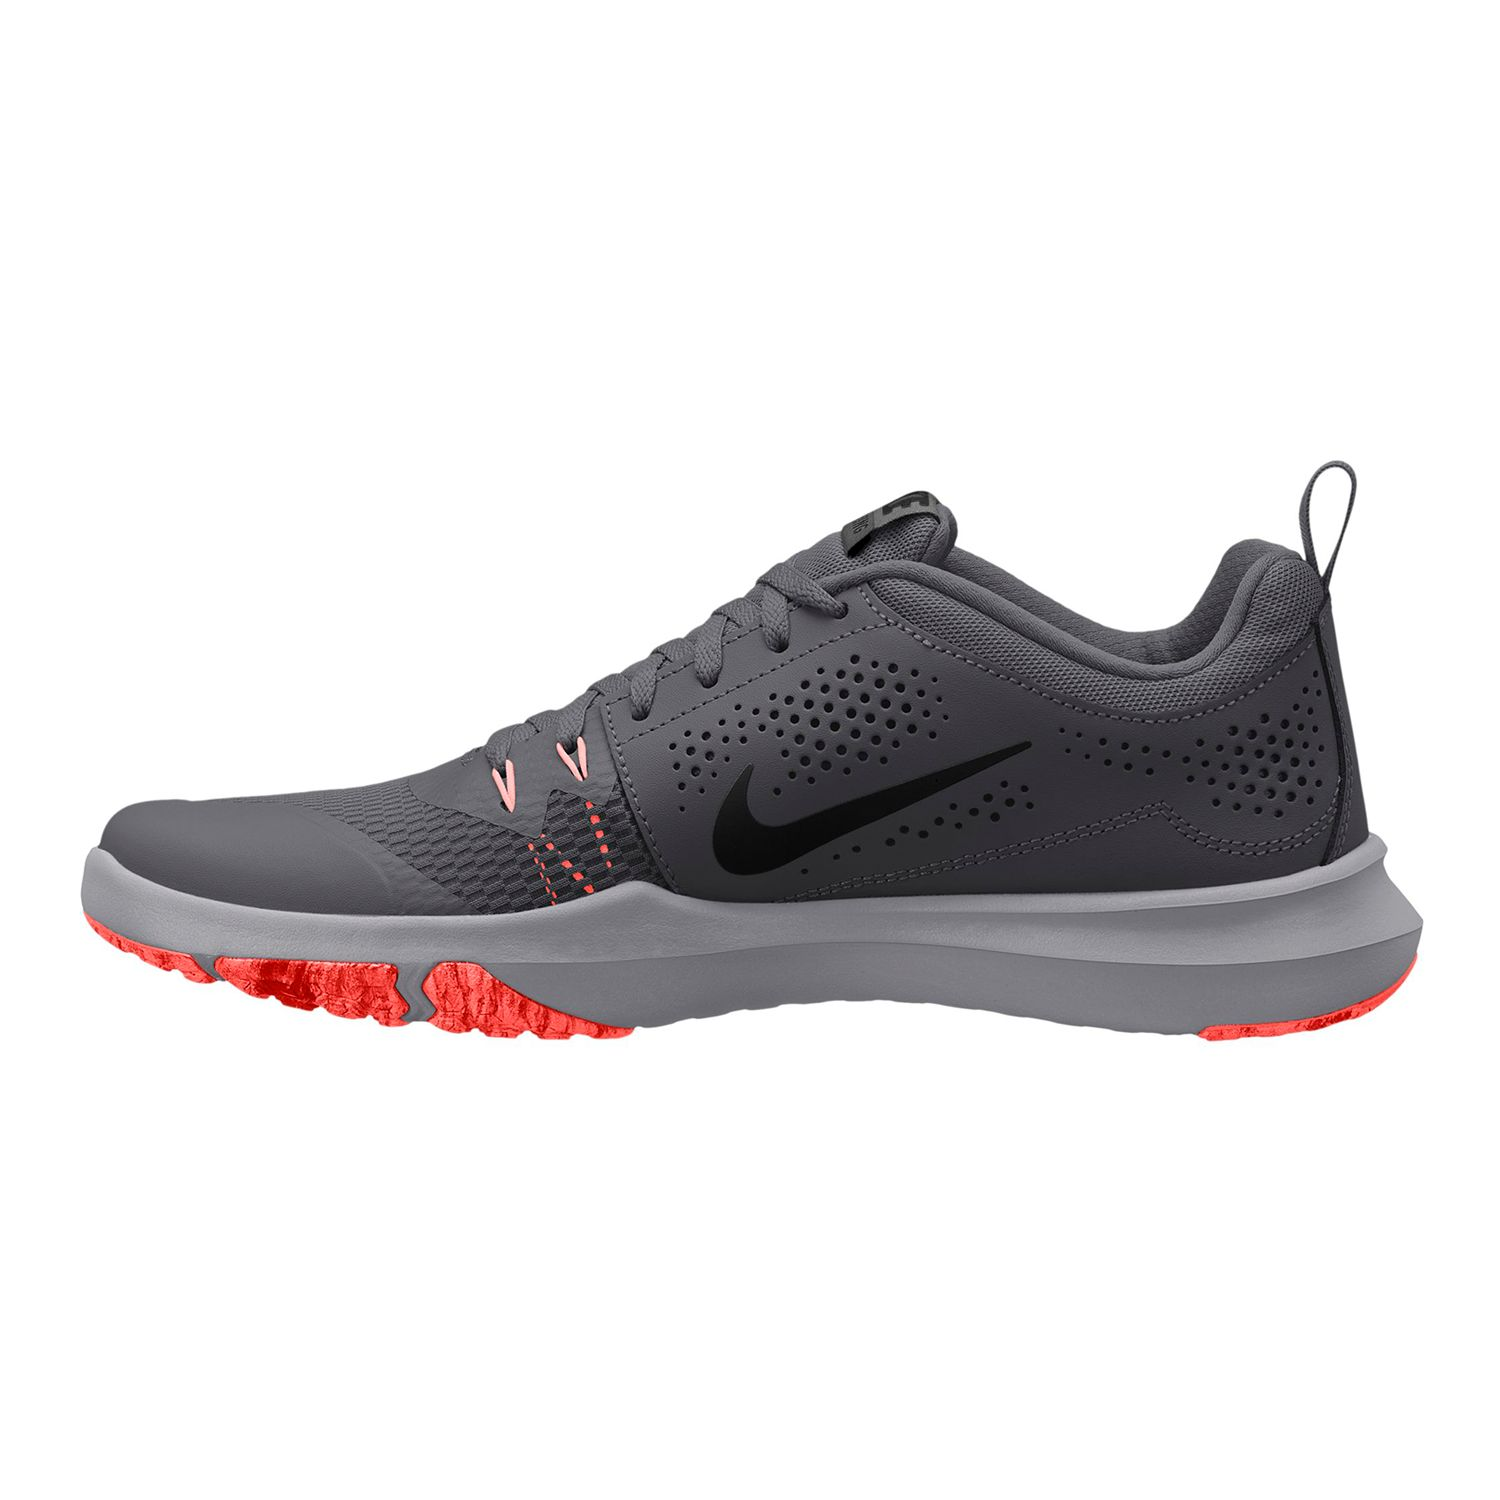 77468e101e8b1a Nike Cross Training Shoes